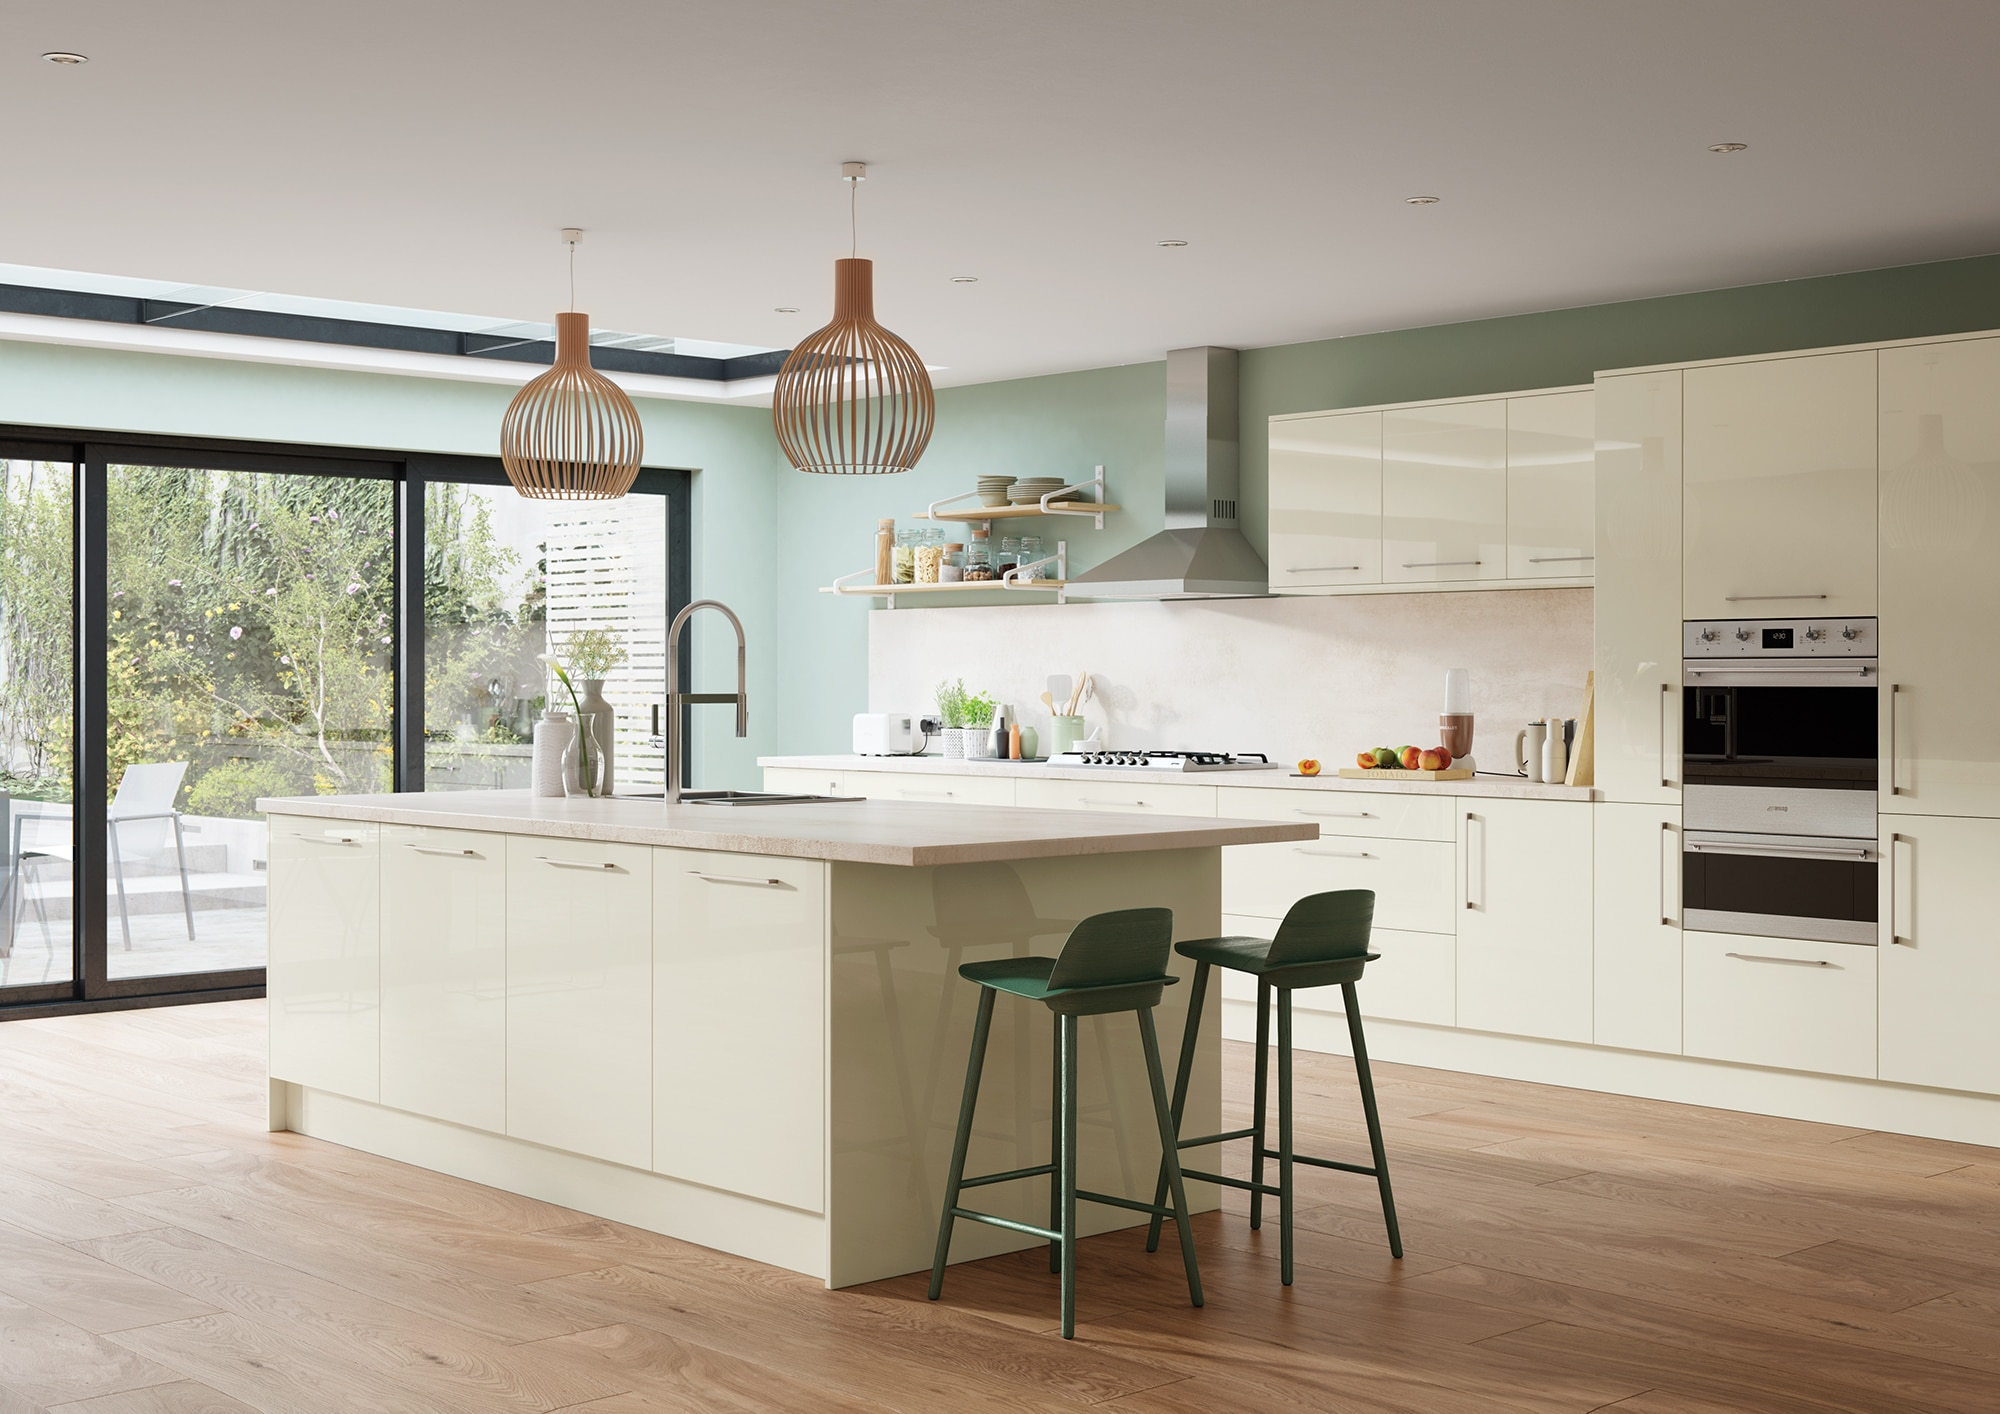 Cerney Gloss Porcelain Main Shoot, from Riley James Kitchens. www.rileyjames.co.uk